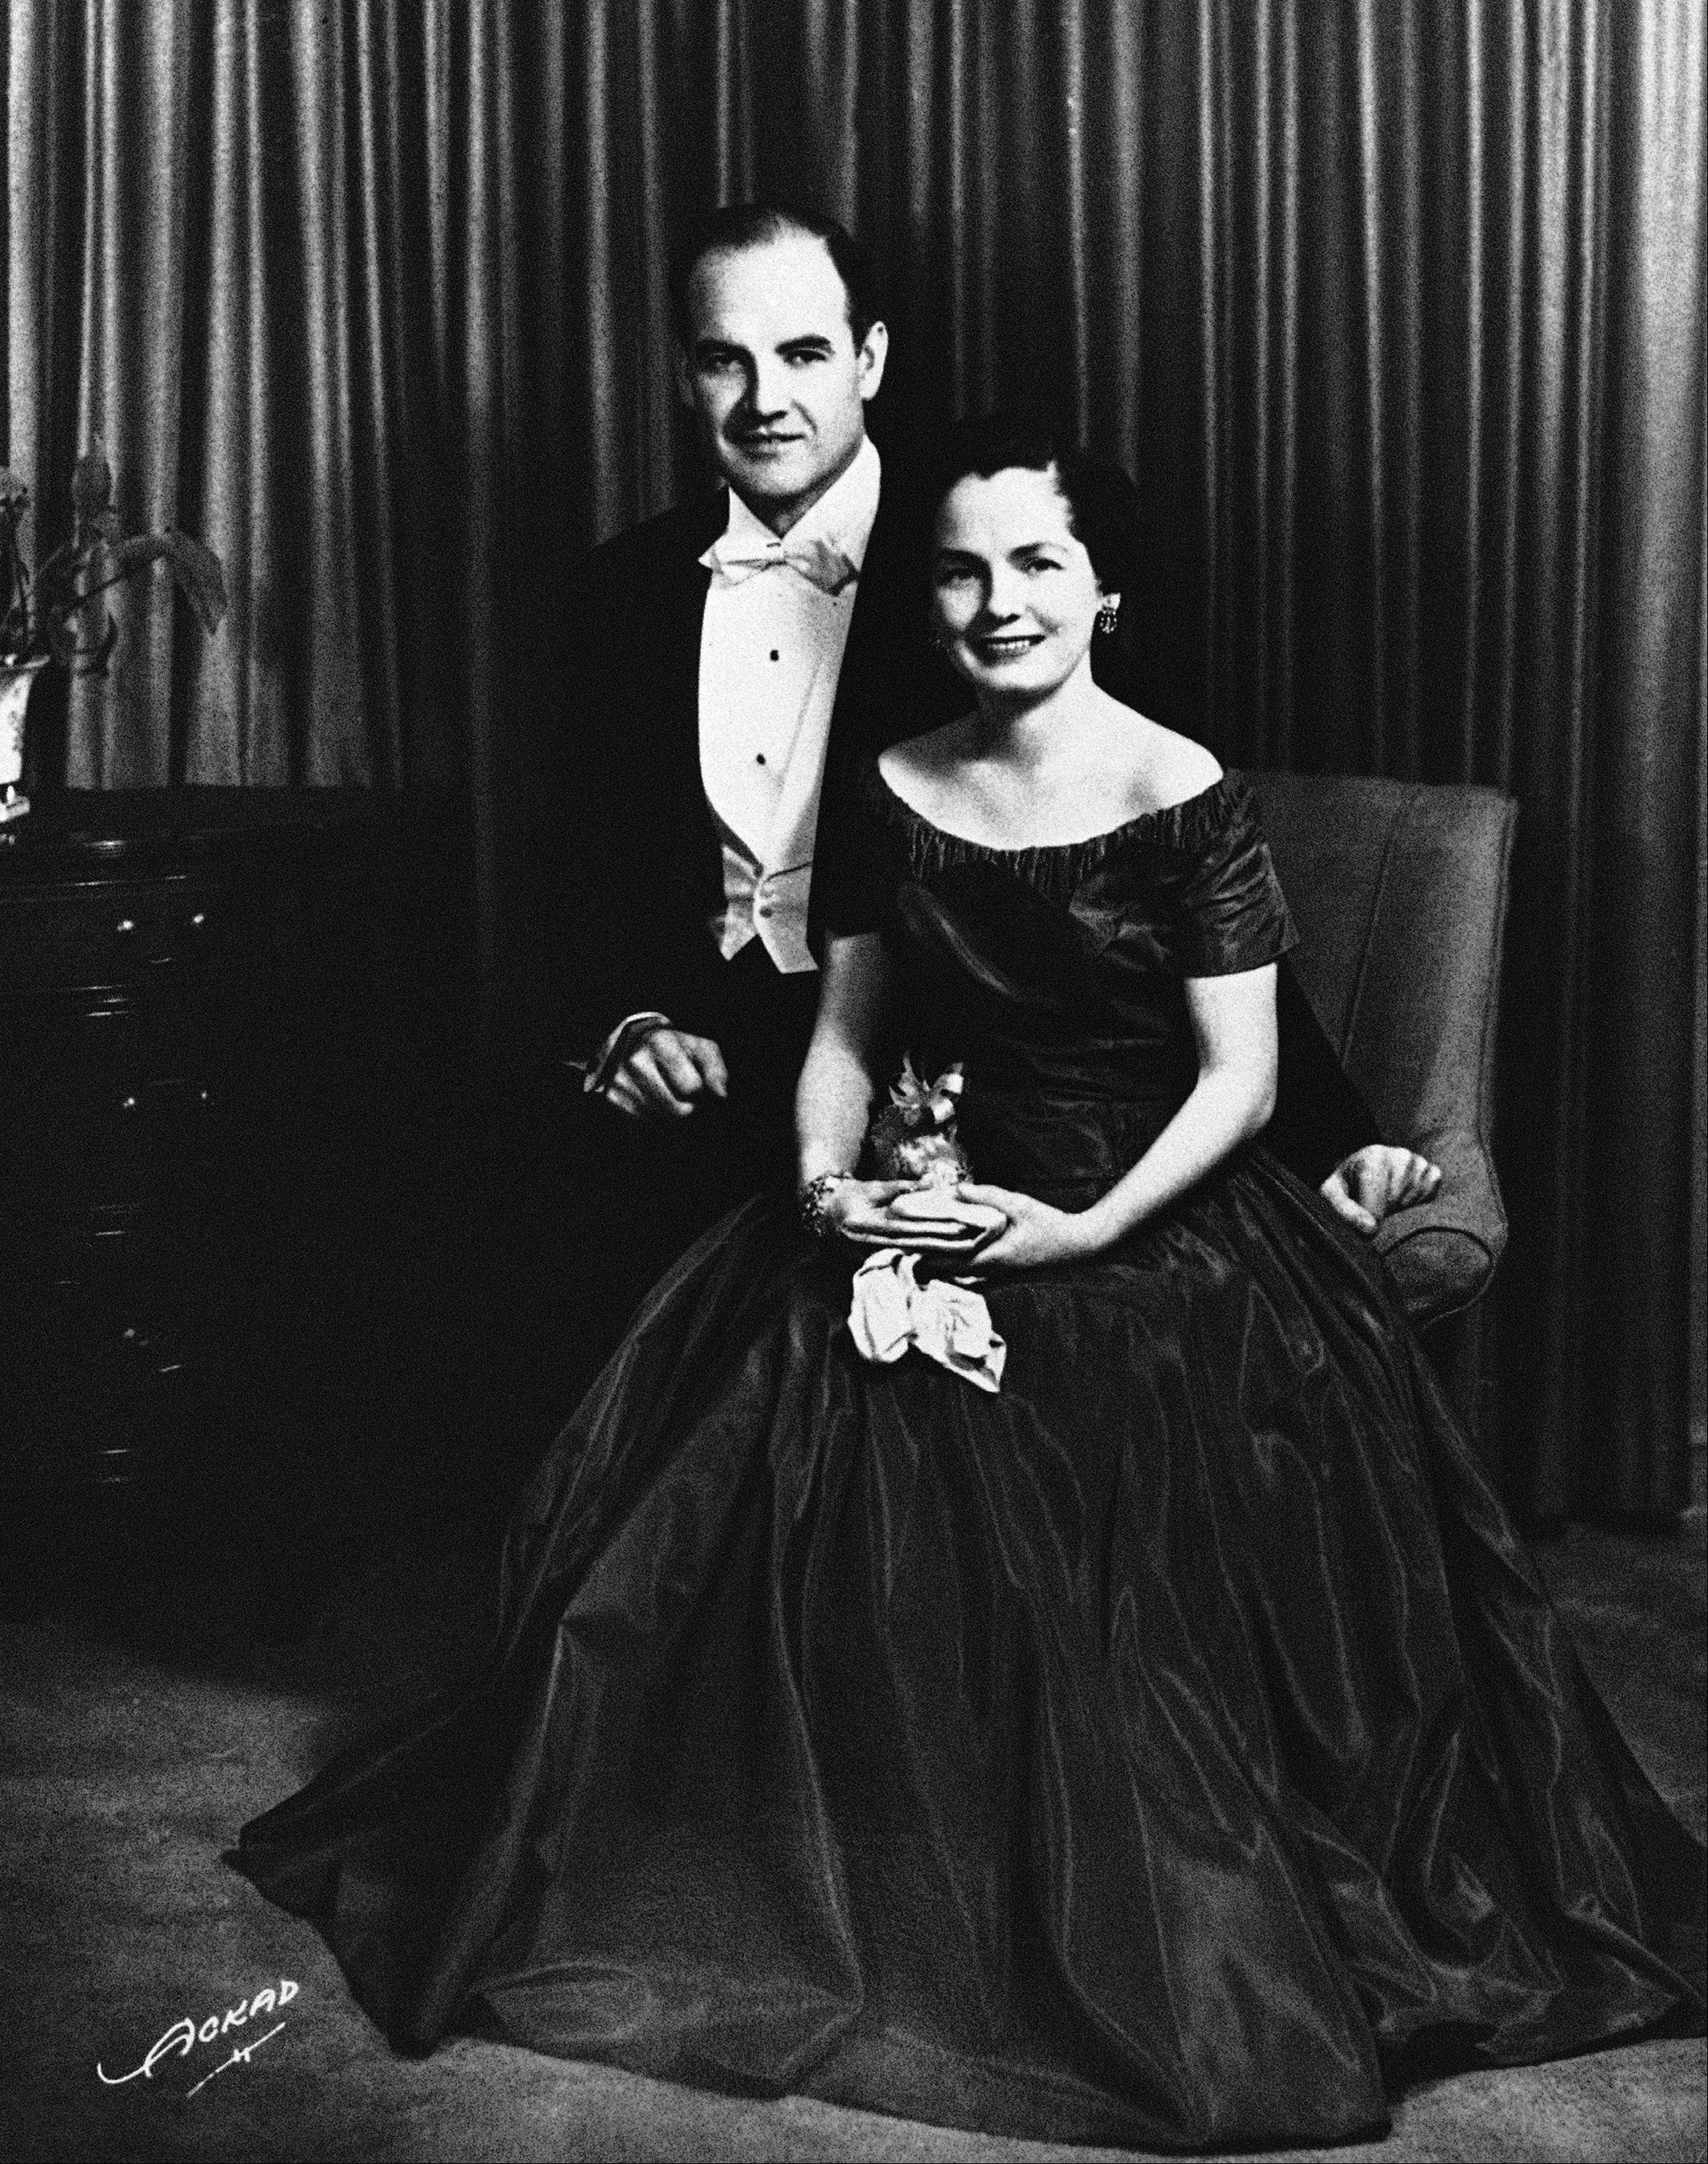 George McGovern and his wife Eleanor dressed to attend their first inaugural ball in Washington in 1957.